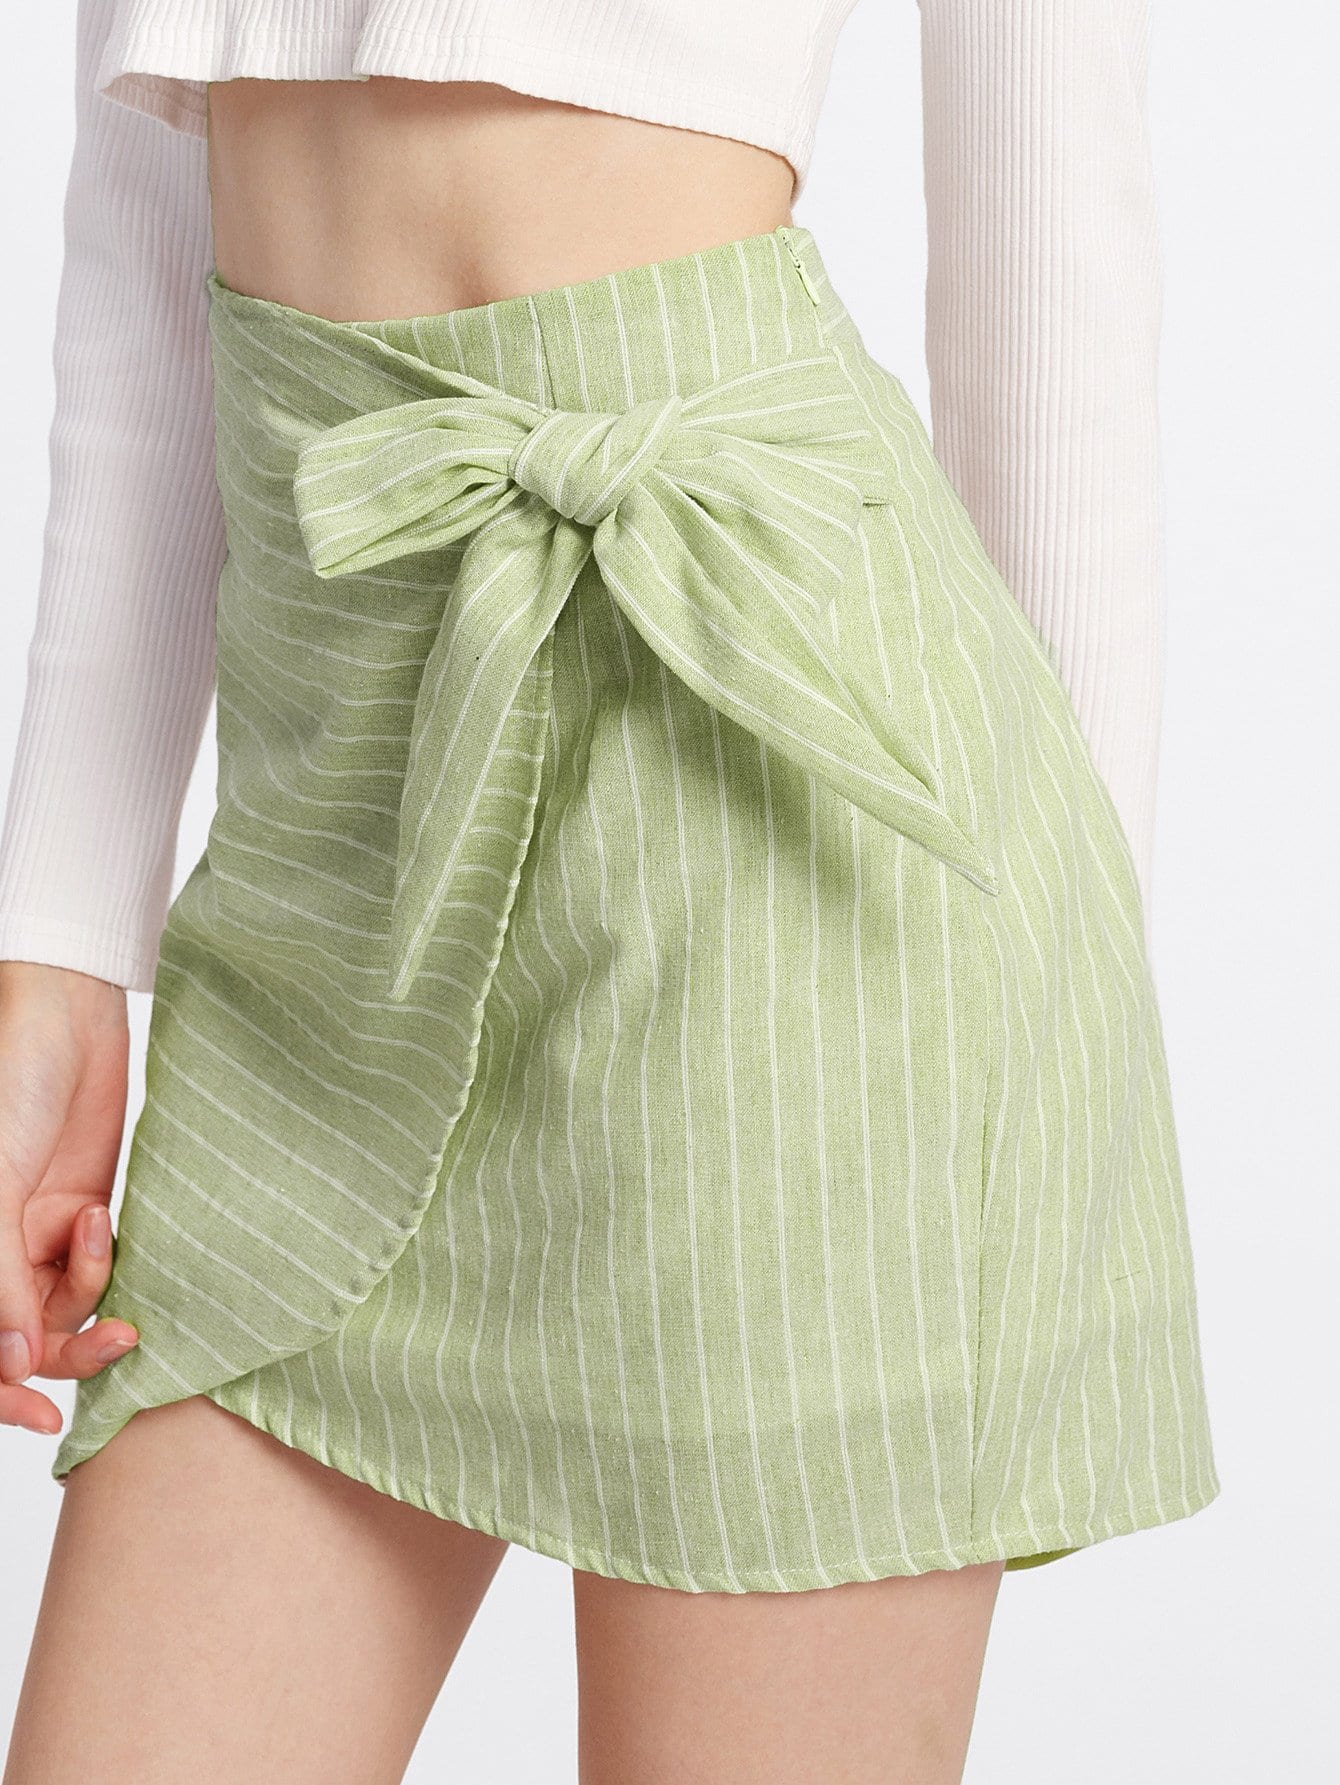 Knot Side Overlap Skirt knot side overlap ruffle trim dot skirt